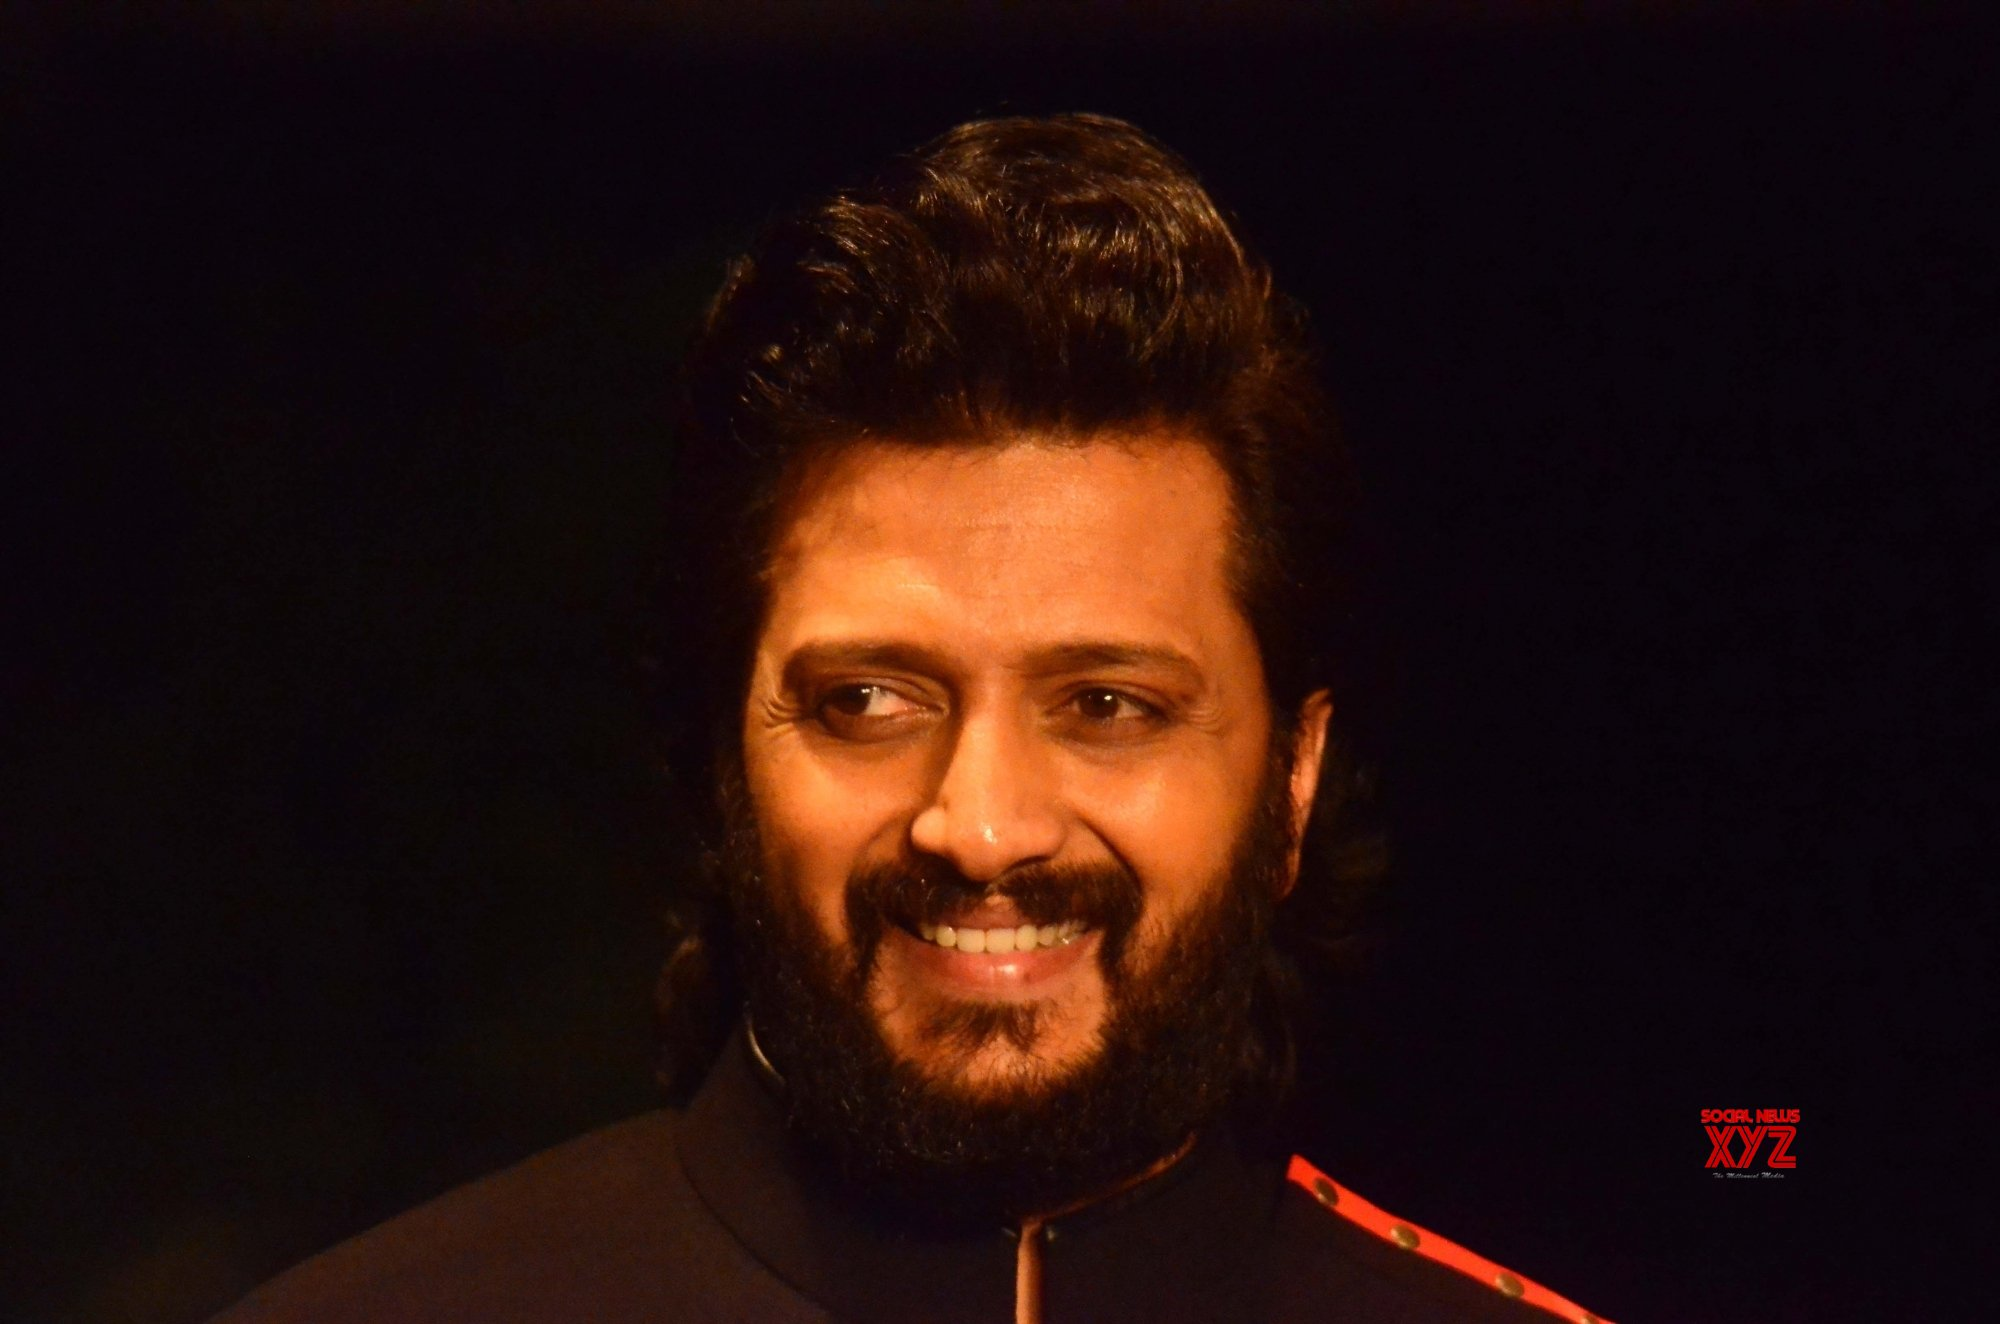 Riteish joins rebellious journey of 'Baaghi' franchise